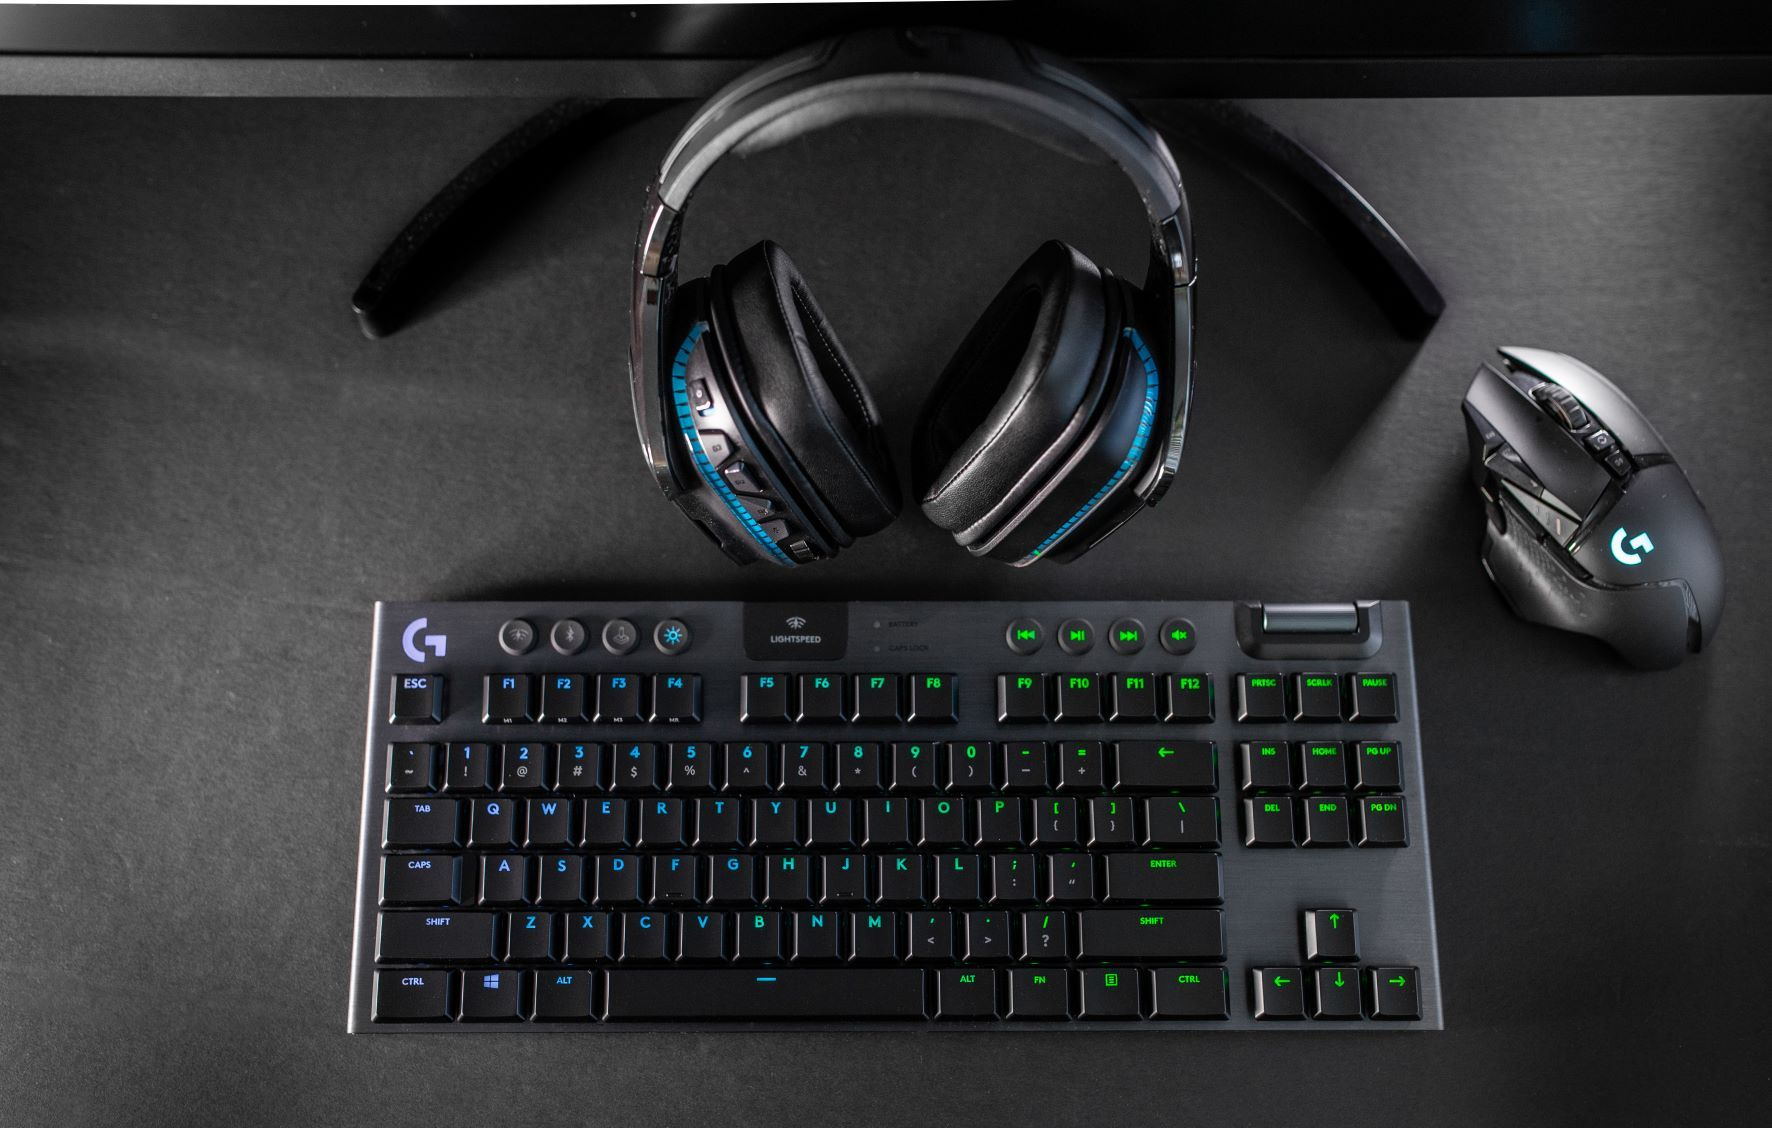 The Logitech G915 TKL Gaming Keyboard combines LIGHTSPEED Wireless, RGB lighting and amazing battery life in a sleek, ultra-thin design that creates a new standard for gaming keyboards